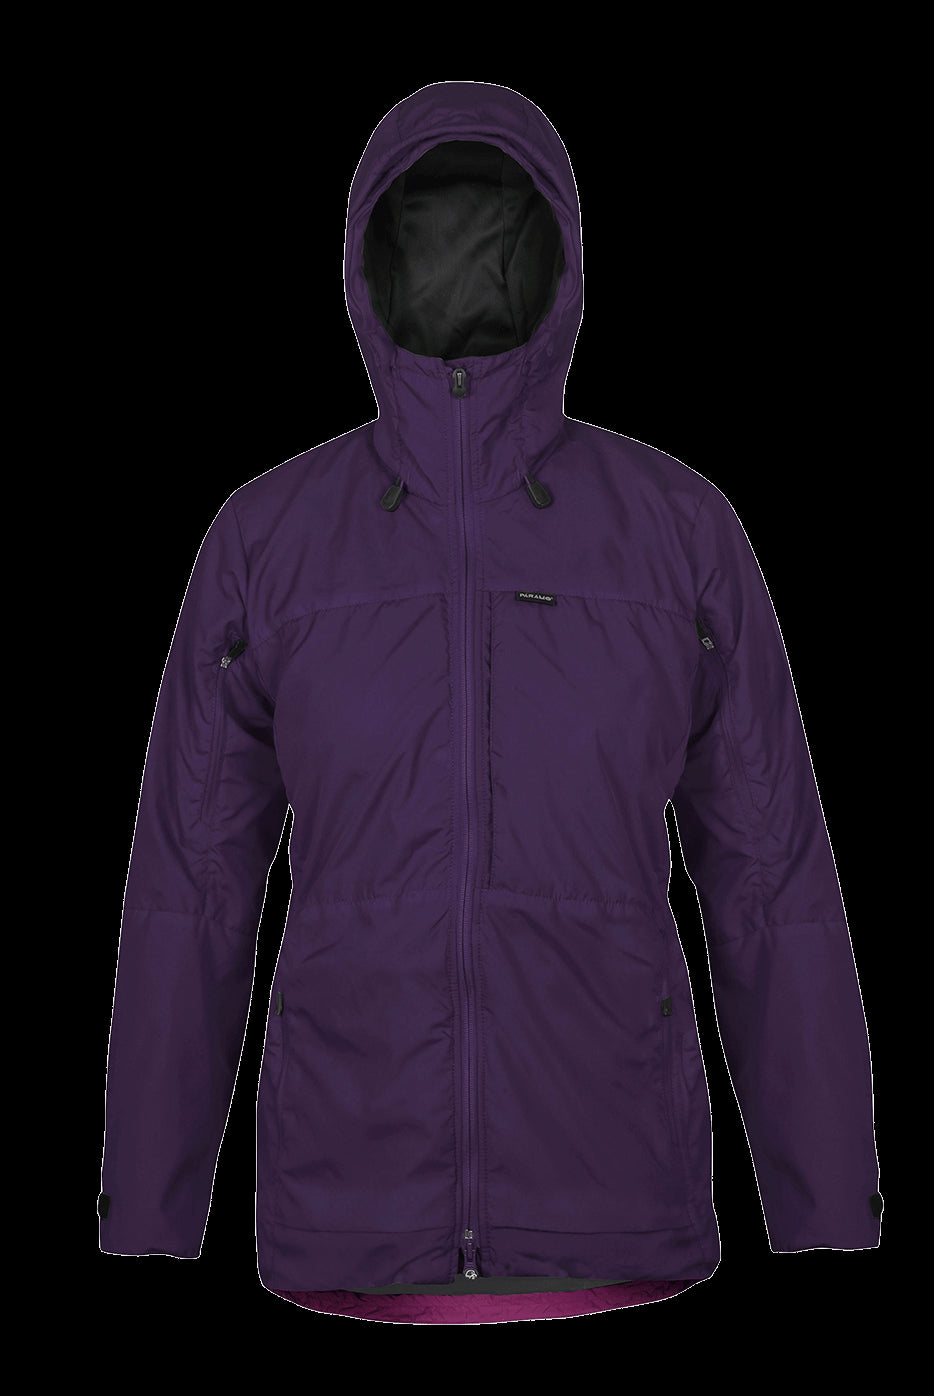 Paramo Alta III Waterproof Jacket for Ladies in Elderberry